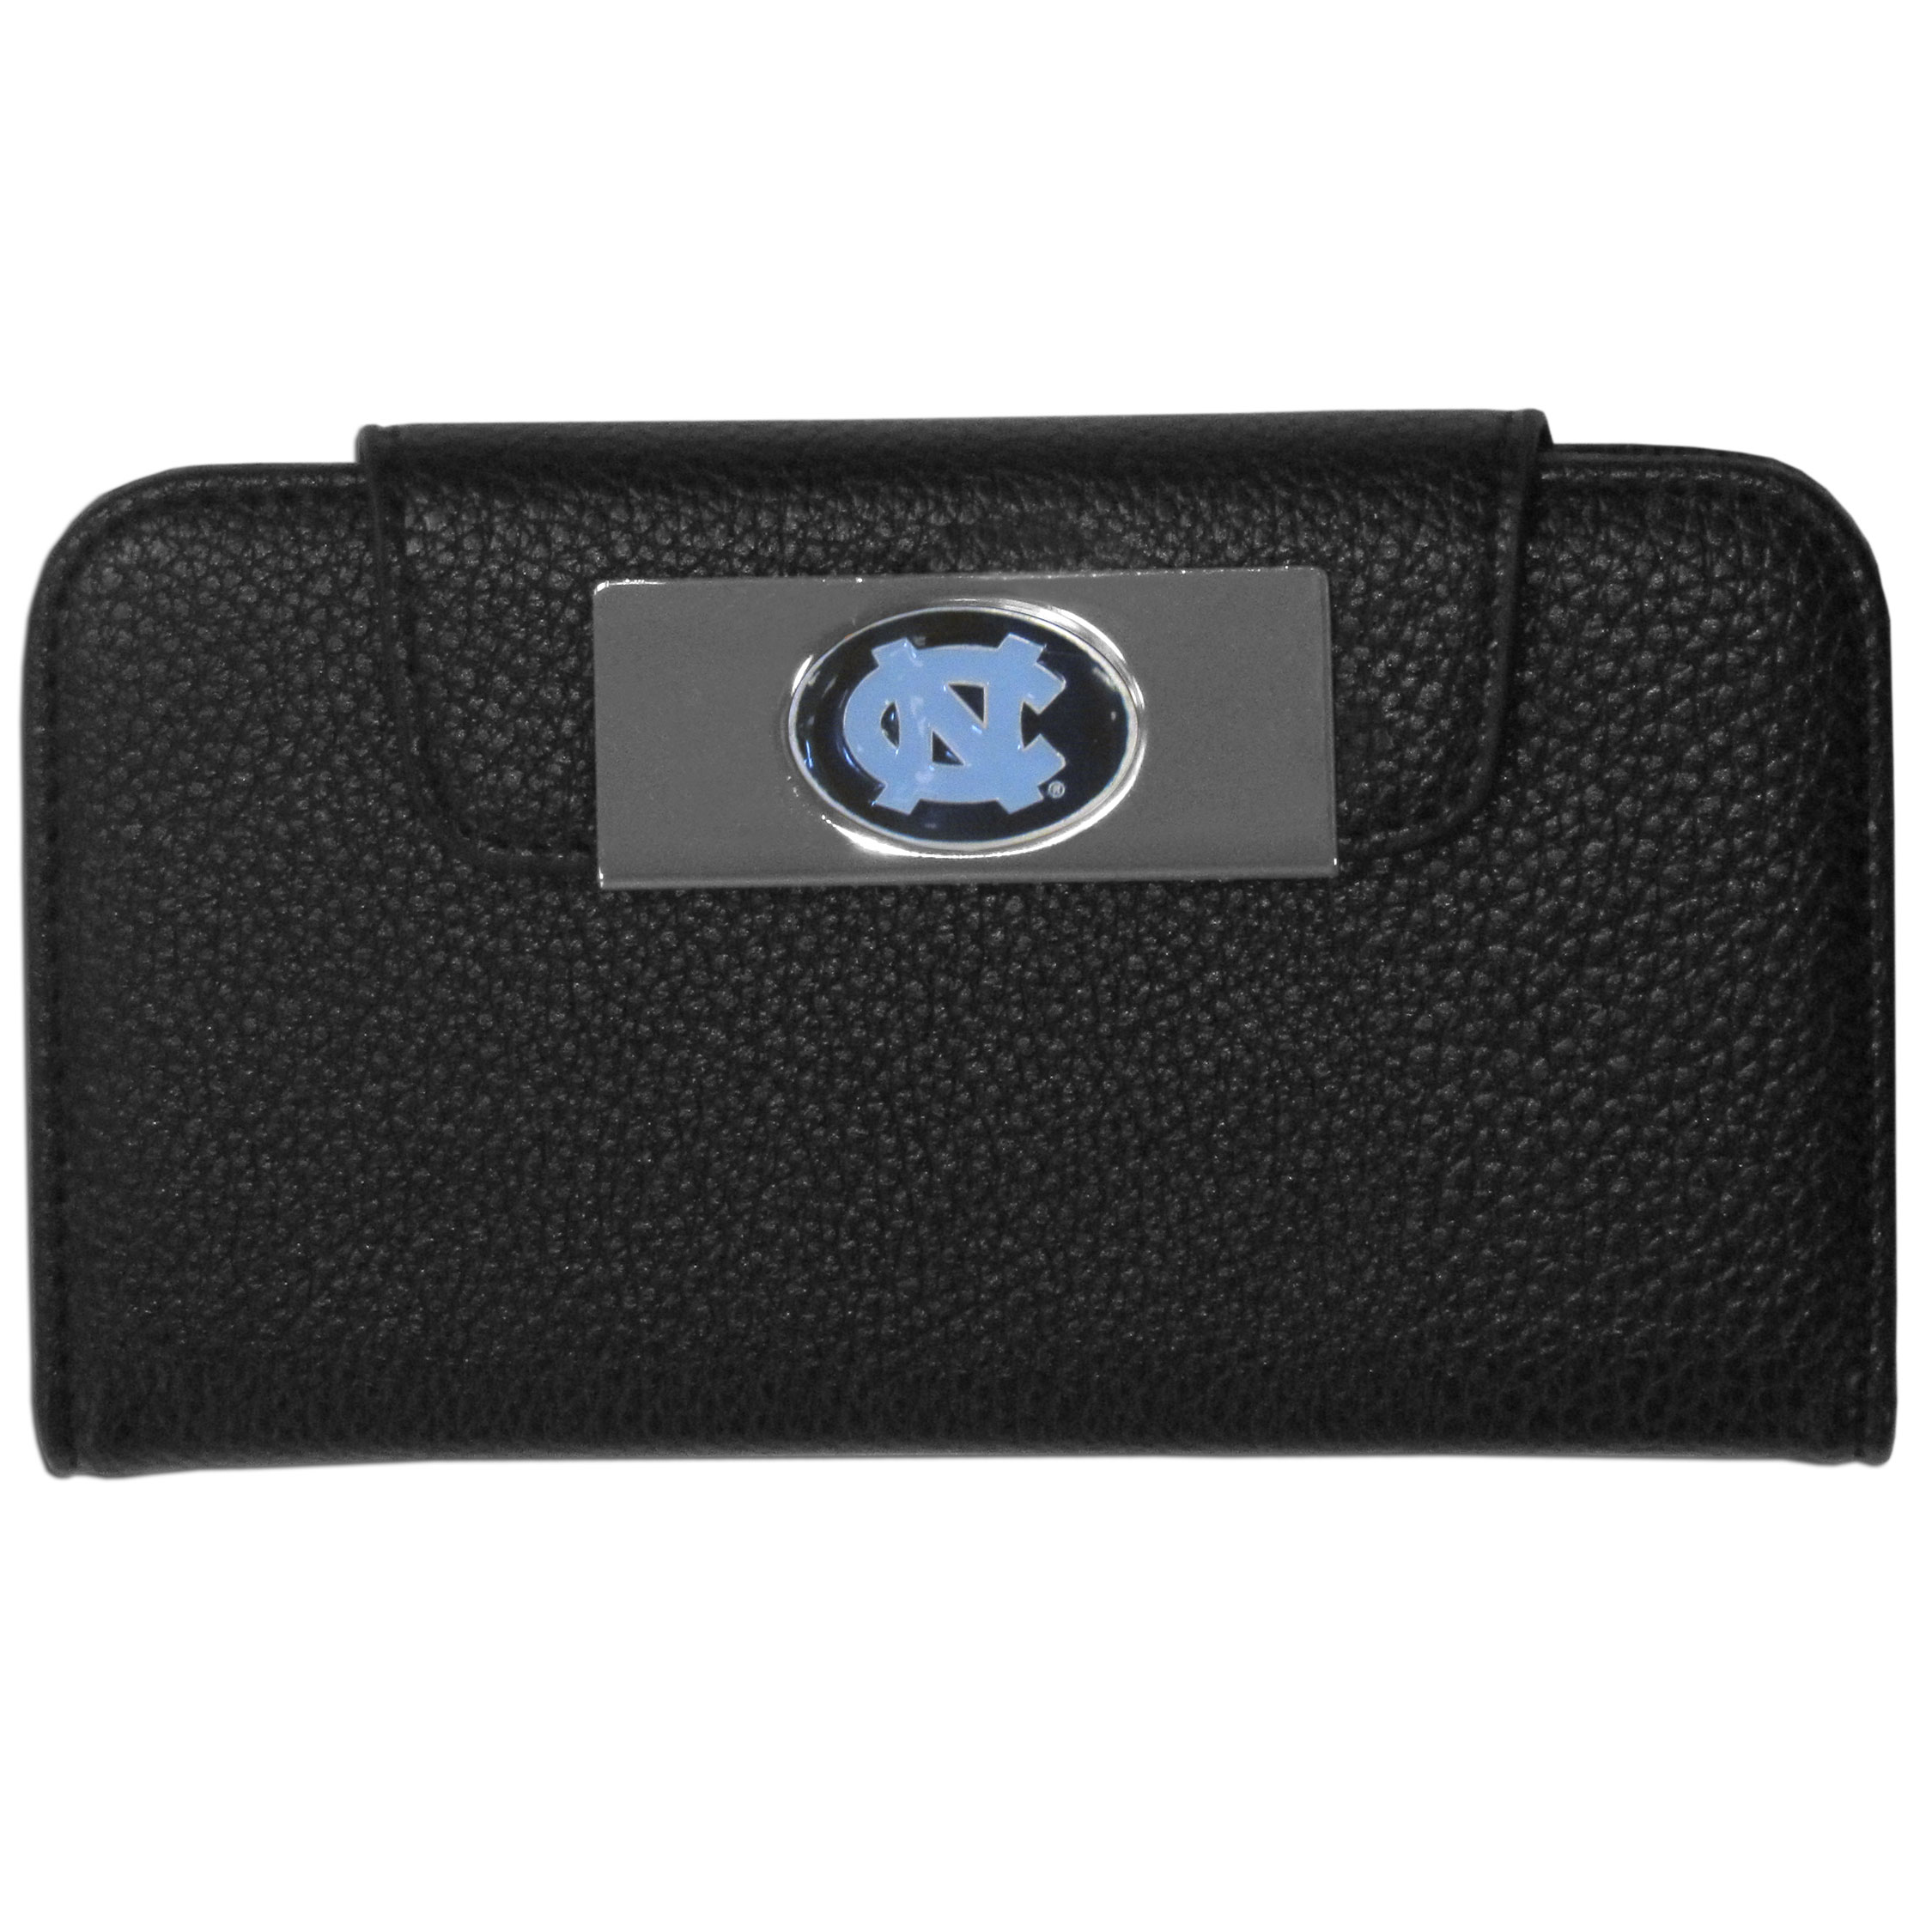 N. Carolina Tar Heels iPhone 5/5S Wallet Case - This new & wildly popular case is ideal for those who like to travel light! The stylish case has an inner hard shell that securely holds your phone while allowing complete access to the phone's functionality. The flip cover has slots for credit cards, business cards and identification. The magnetic flip cover has a metal N. Carolina Tar Heels emblem on a high polish chrome backing. Fits the iPhone 5/5S